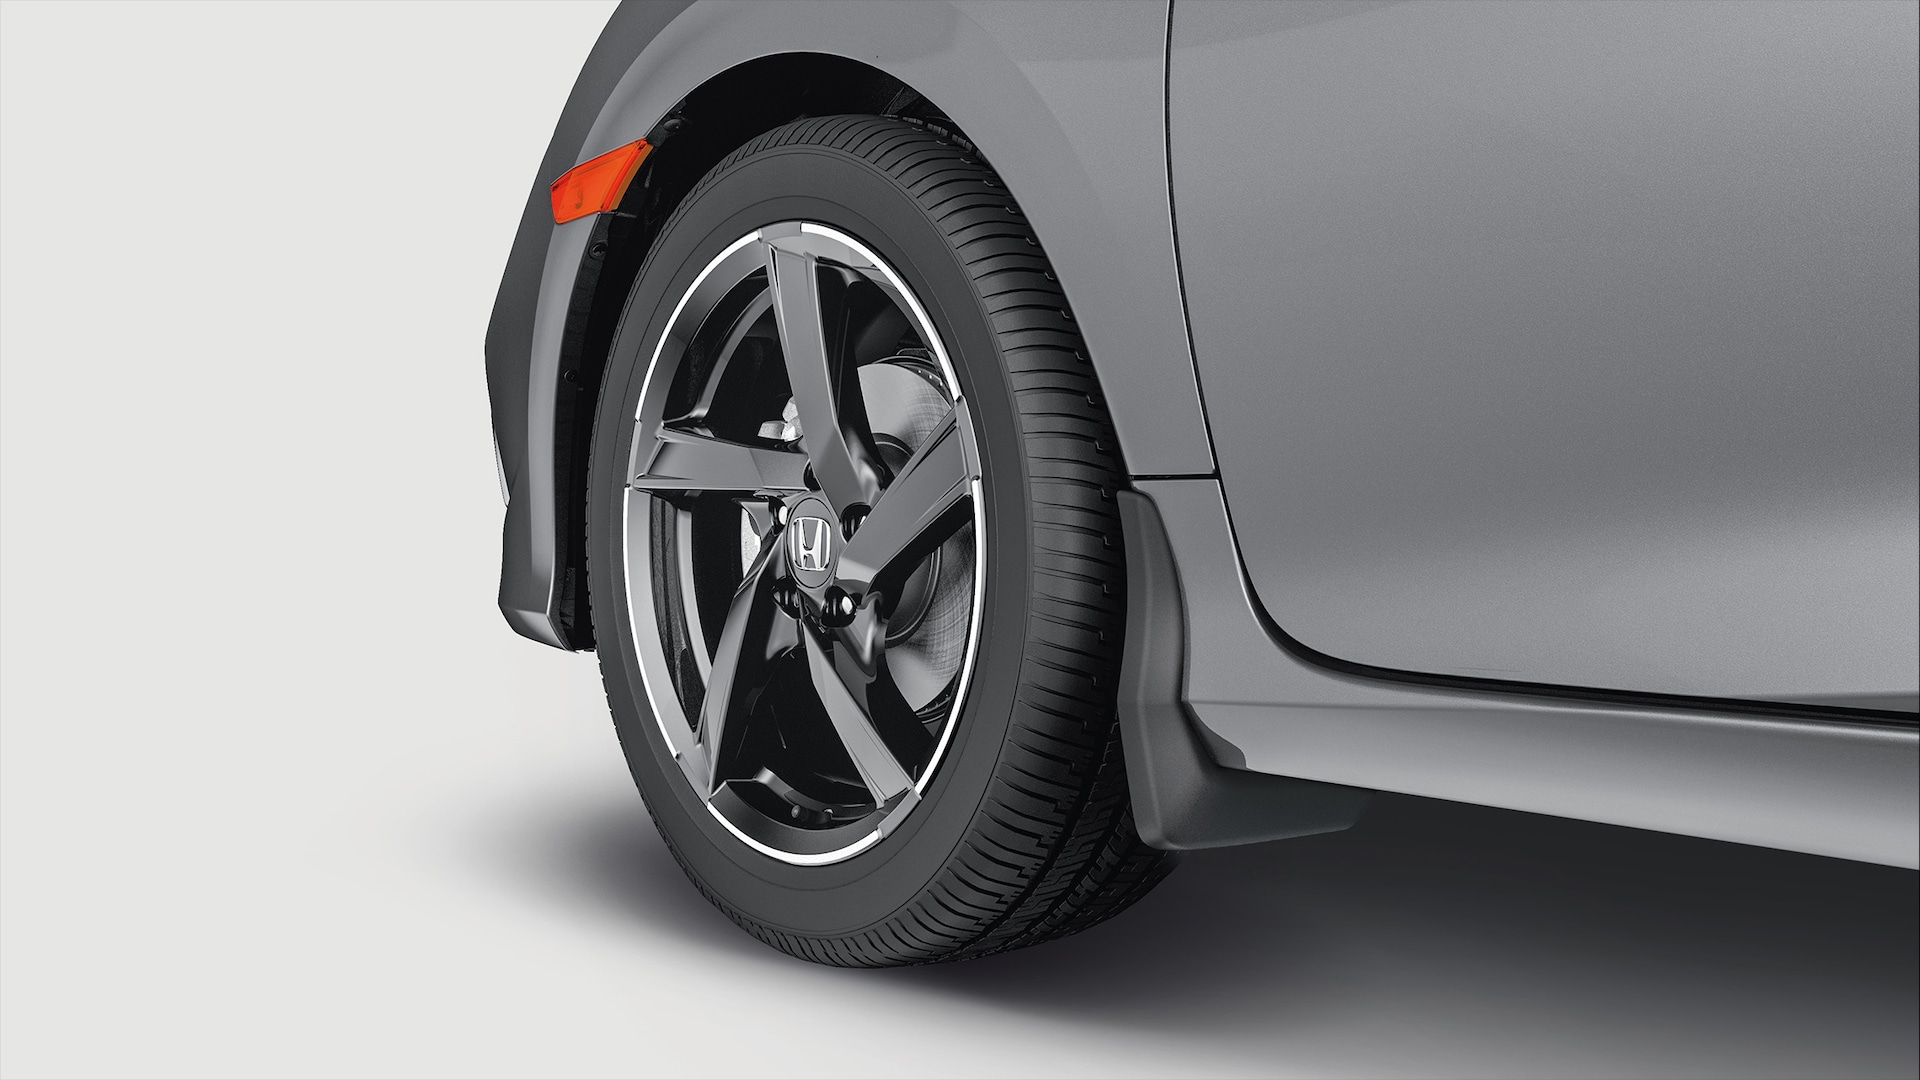 Accessory 18-inch, 5-spoke black alloy wheel detail on the 2020 Honda Civic Coupe in Modern Steel Metallic.